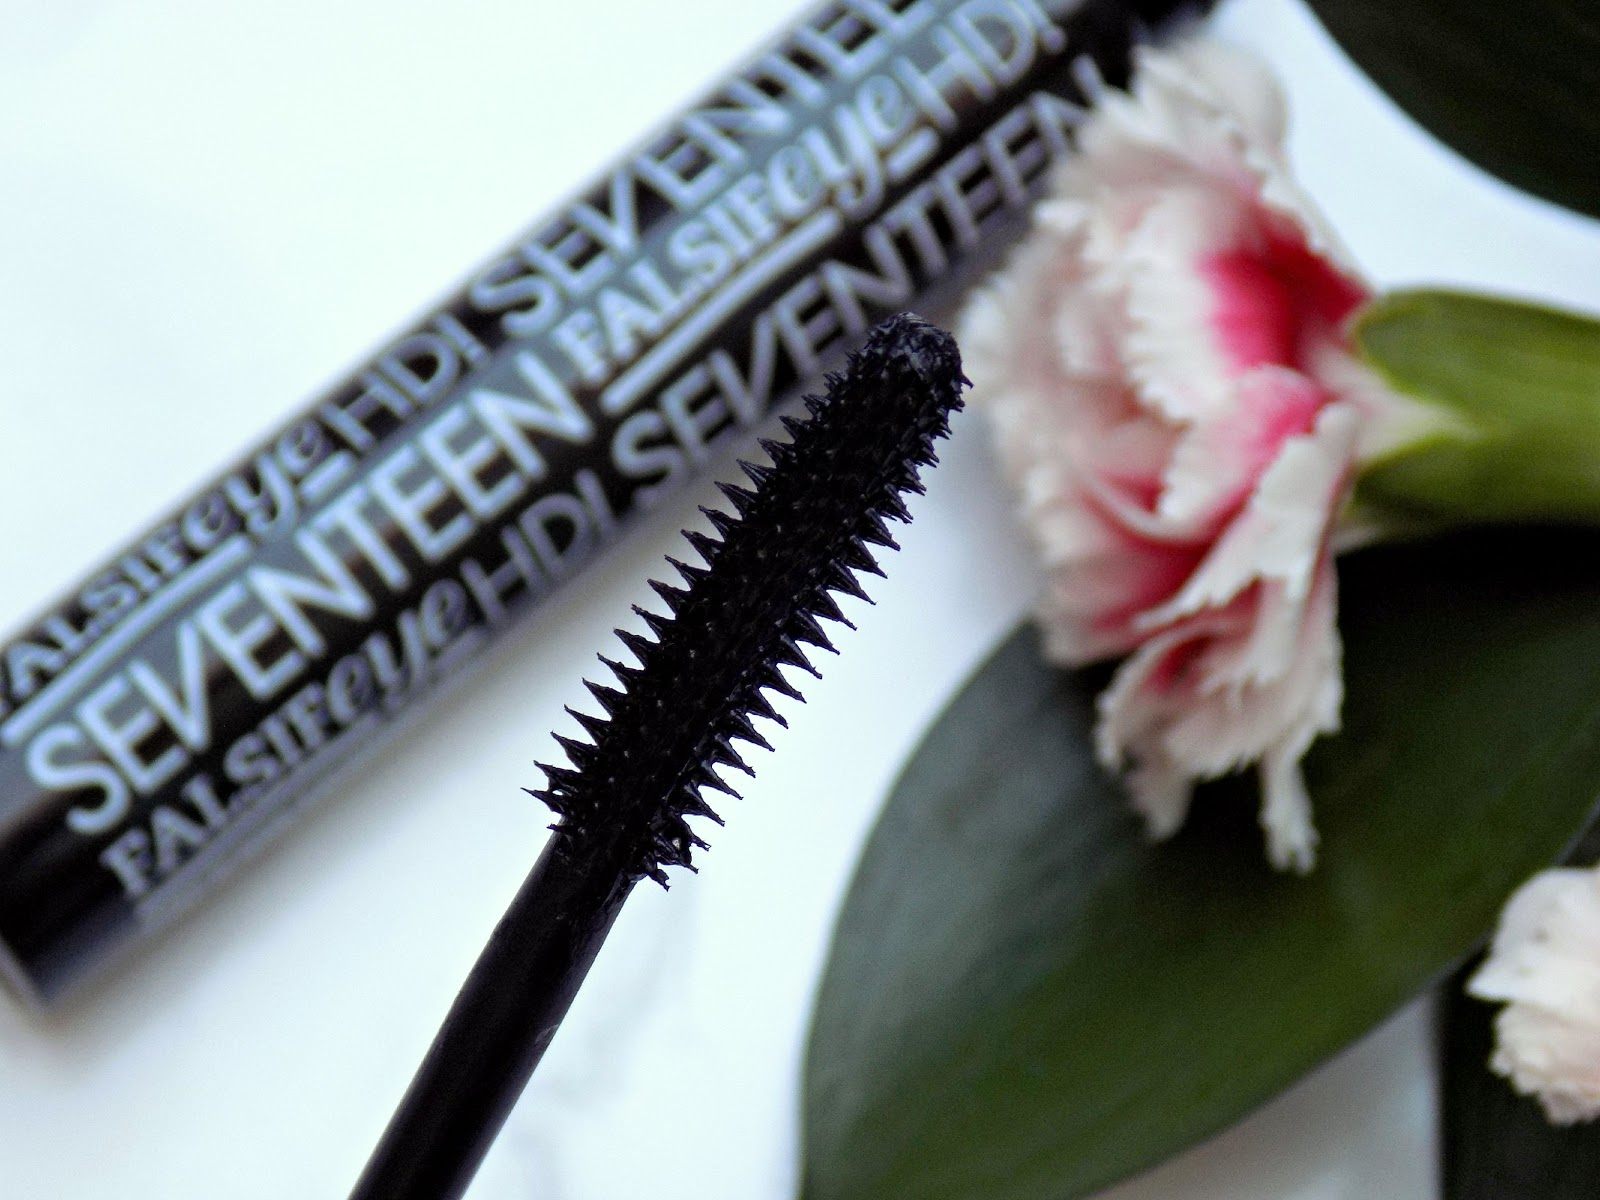 Seventeen Cosmetics Falsifeye HD mascara